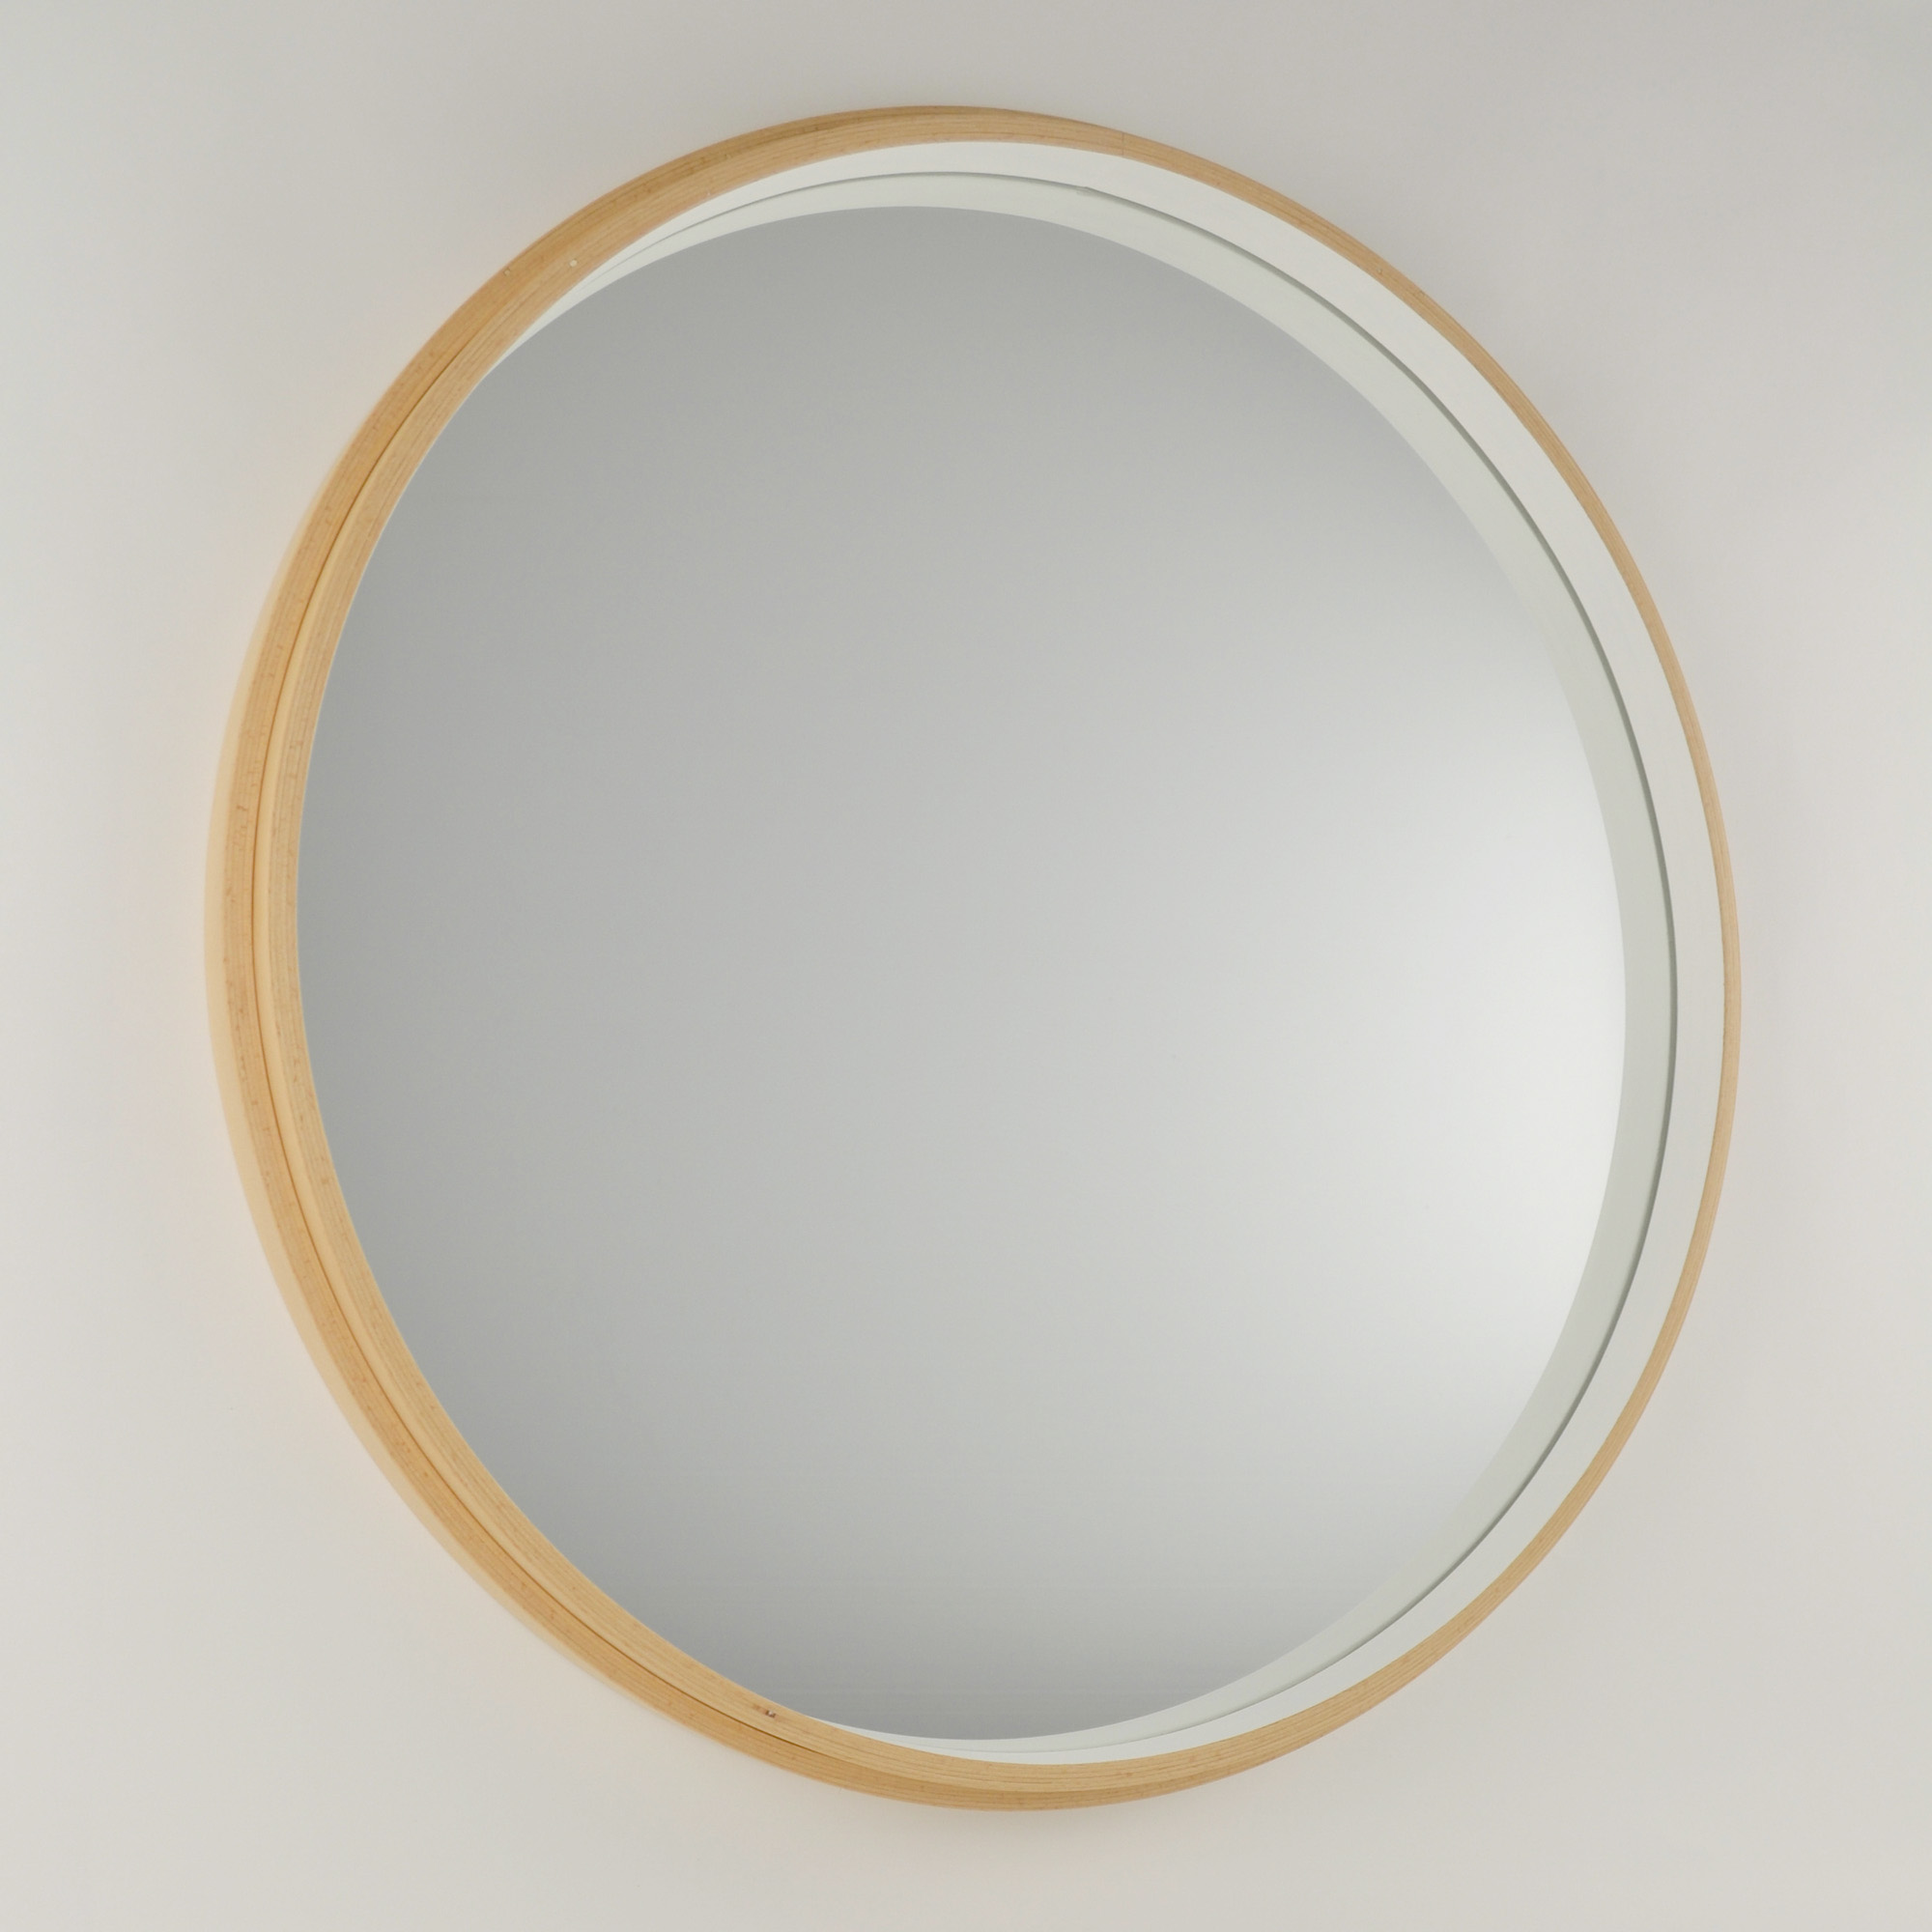 Inhouse clocks | beech wood mirror